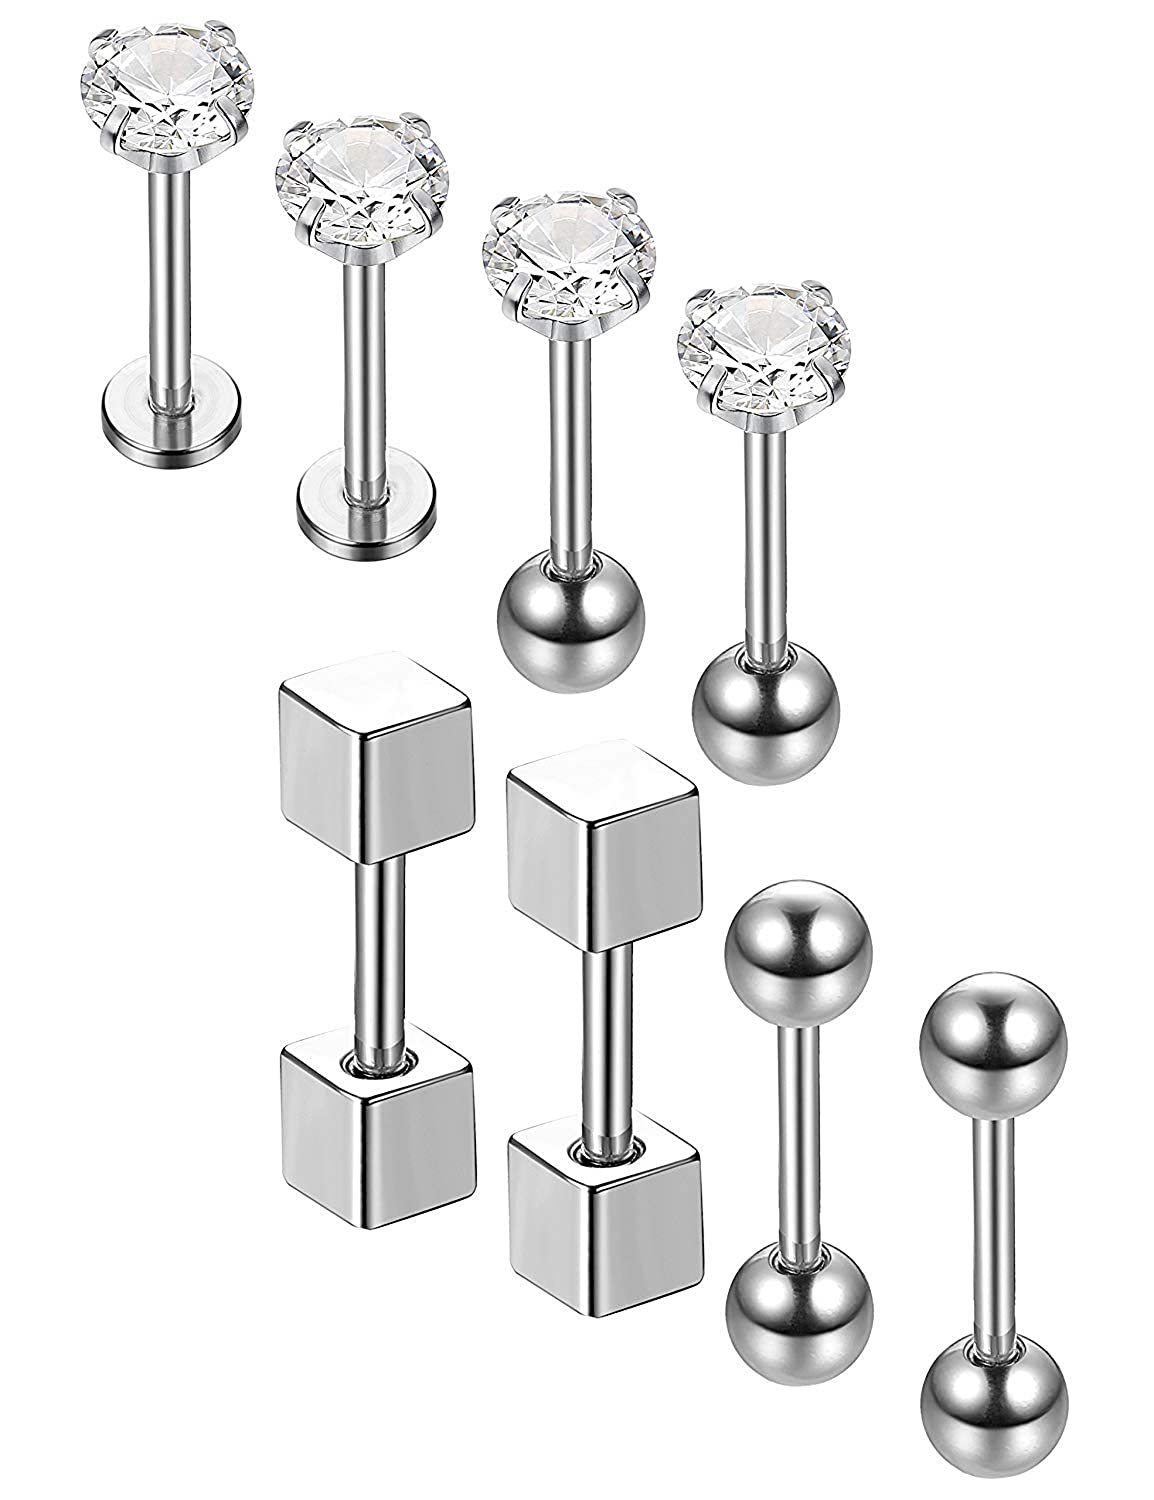 Subiceto 4Pairs 18G Stainless Steel Ear Piercing Jewelry Barbell Piercing Studs Cartilage Helix Earrings CZ Inlaid